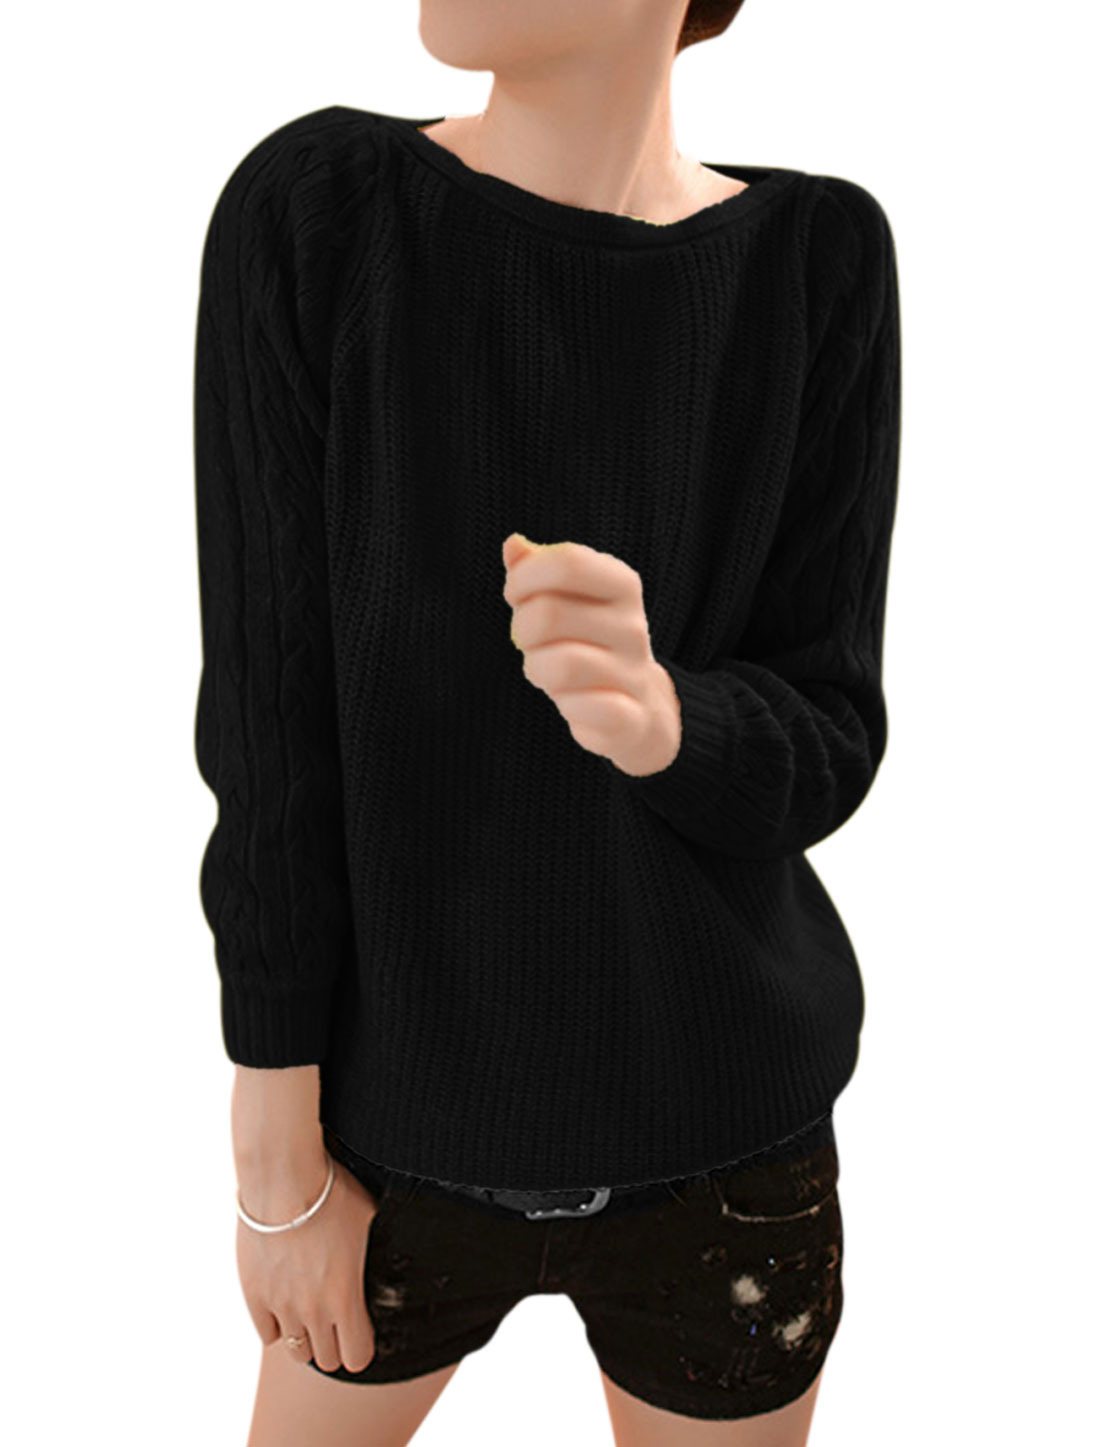 Women Raglan Sleeve Round Neck Fashion Cable Knit Sweater Black S